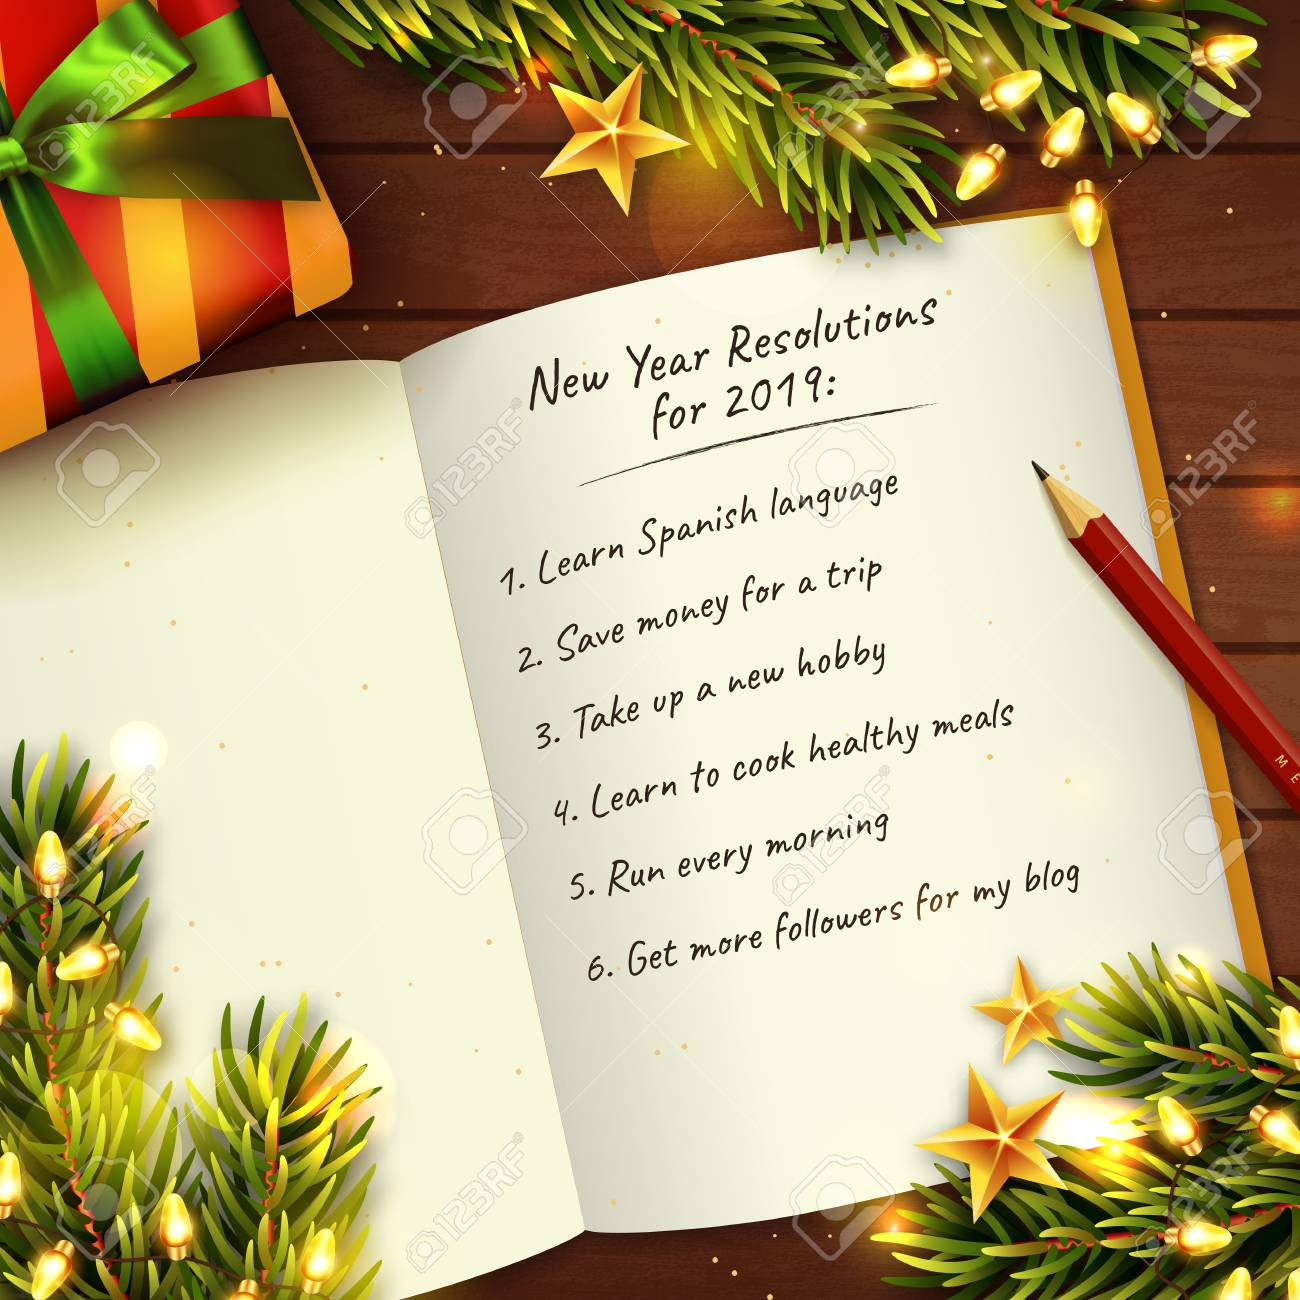 Christmas List 2019.New Year 2019 Resolutions Concept With Notebook Christmas Tree